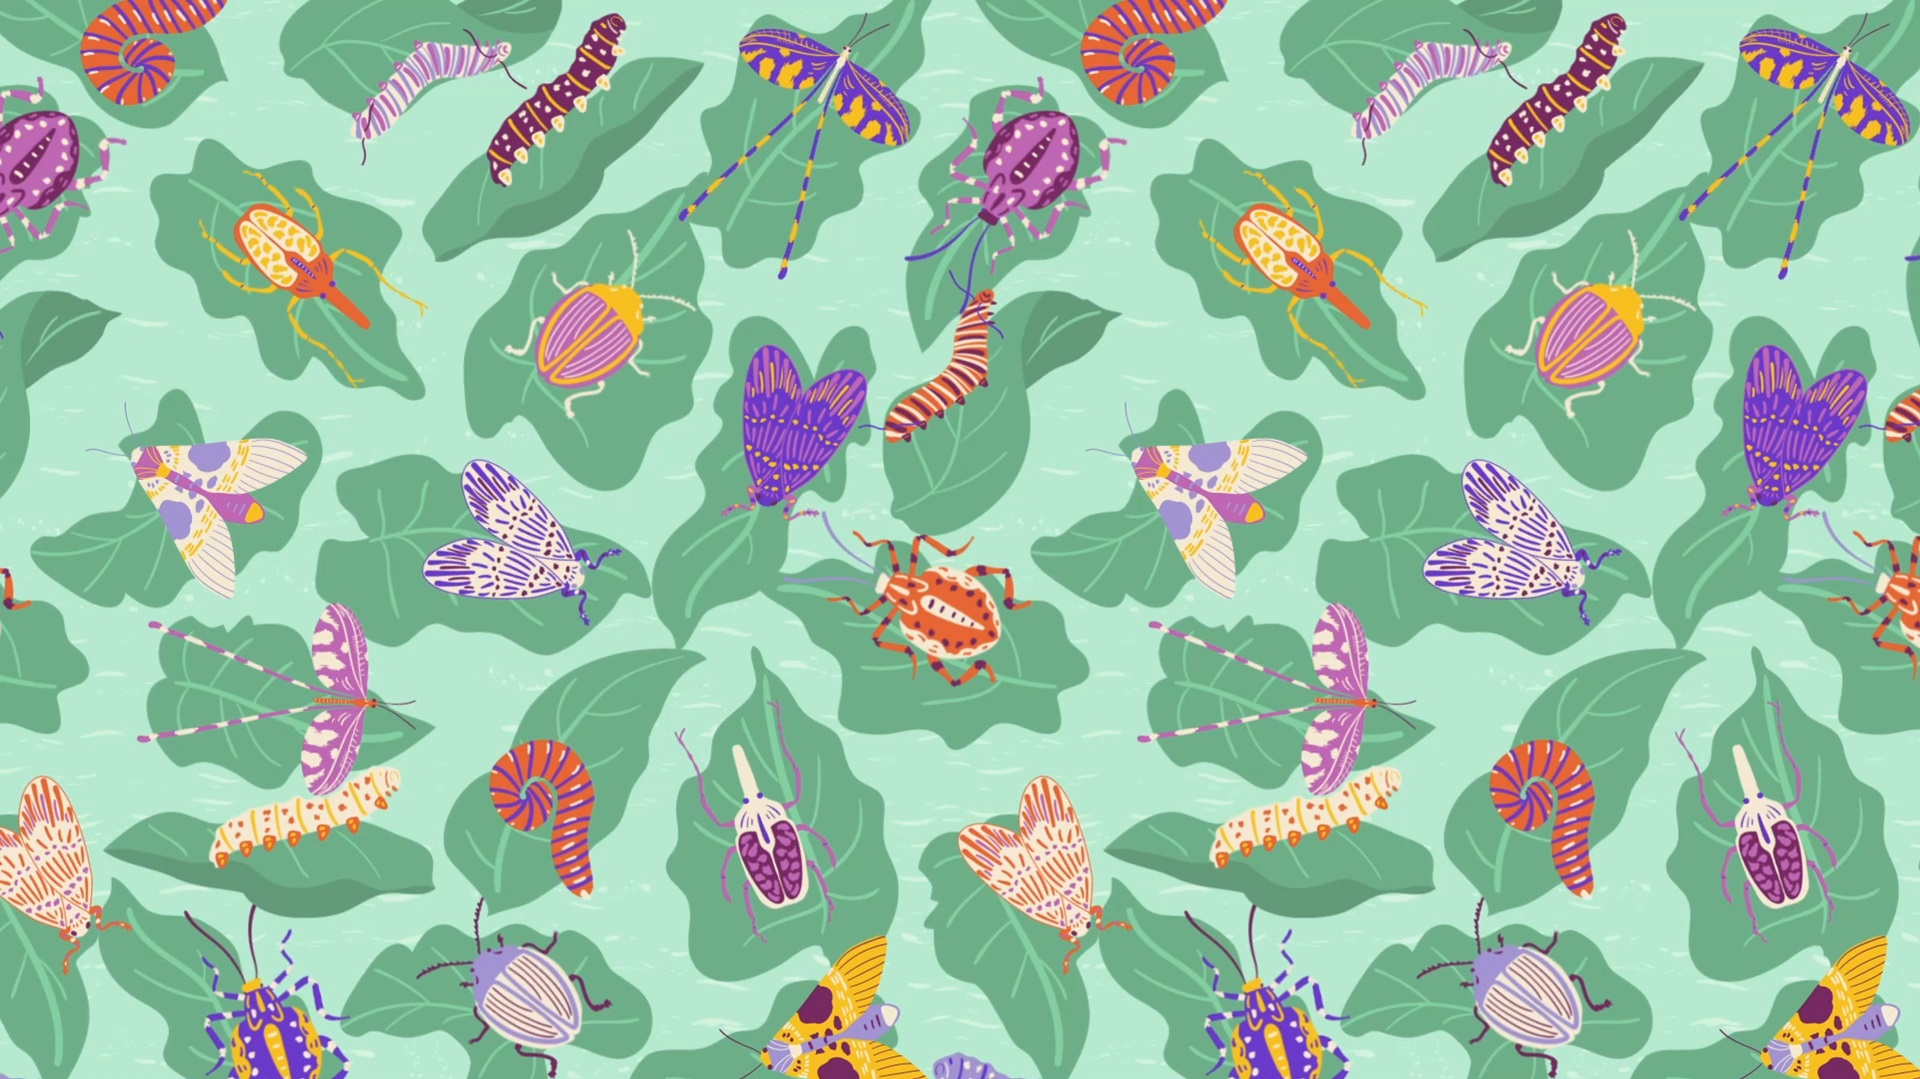 Bugs Surface Pattern 16x9 JPEG